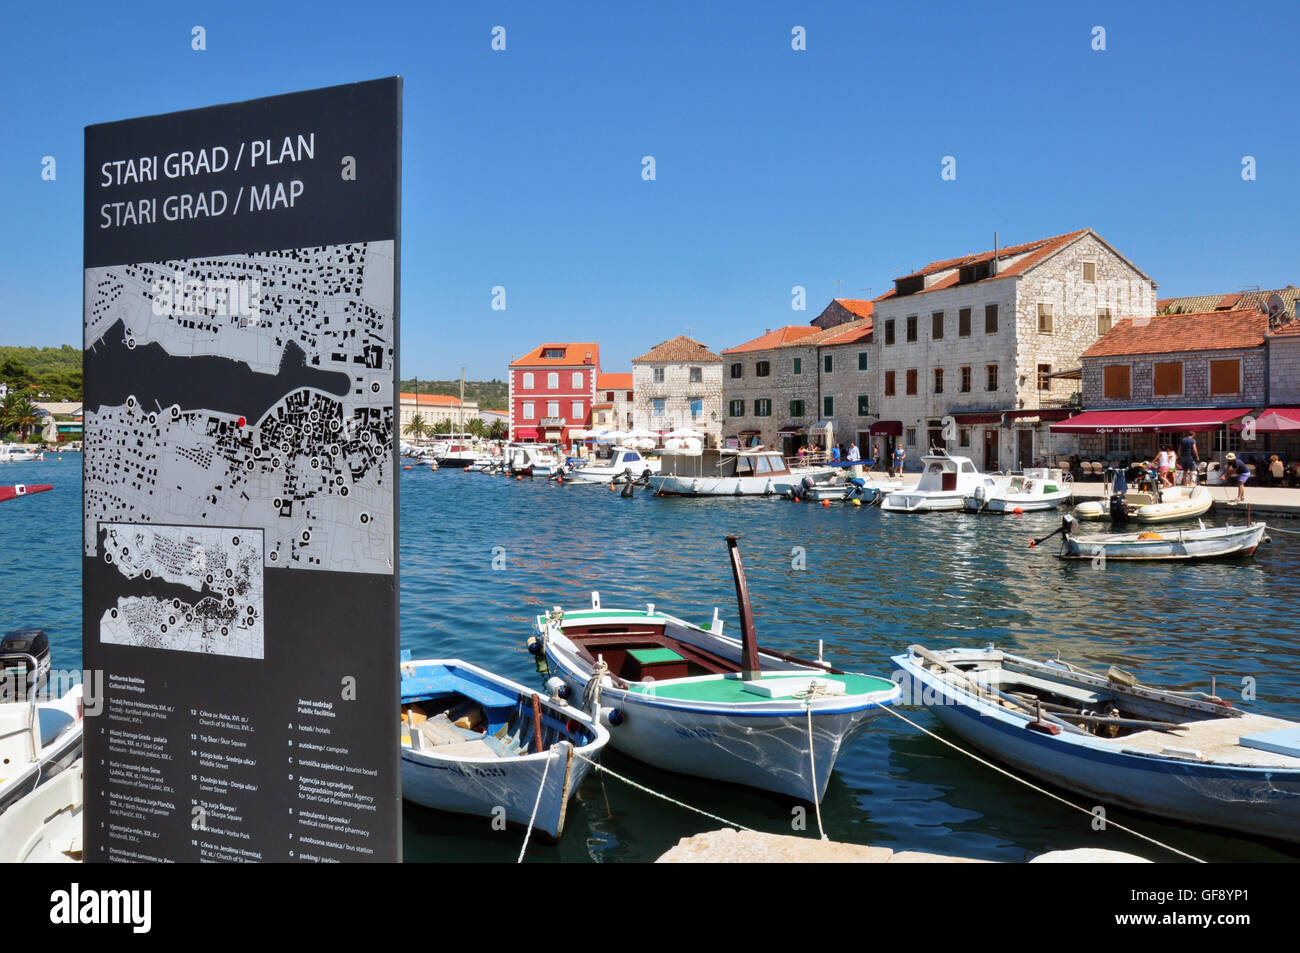 STARI GRAD, CROATIA - JULY 17: Panorama of historical centre with a city map of Stari Grad on July 17, 2012. - Stock Image